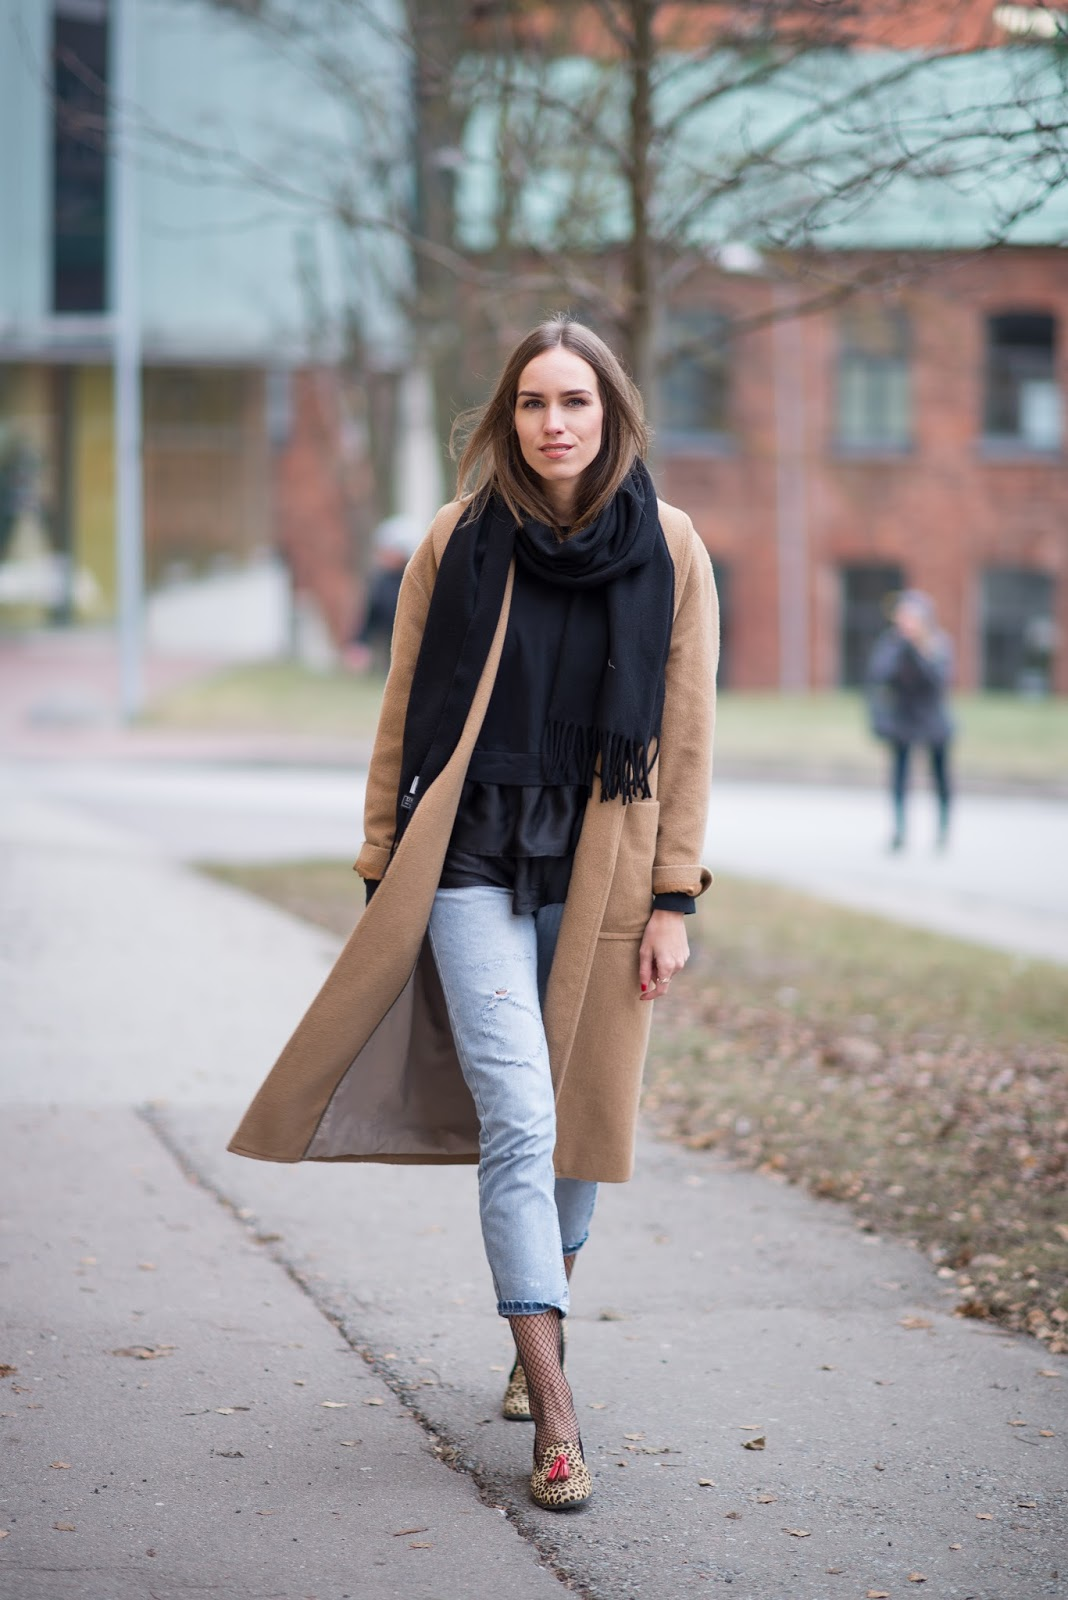 acne scarf camel coat minimalist outfit